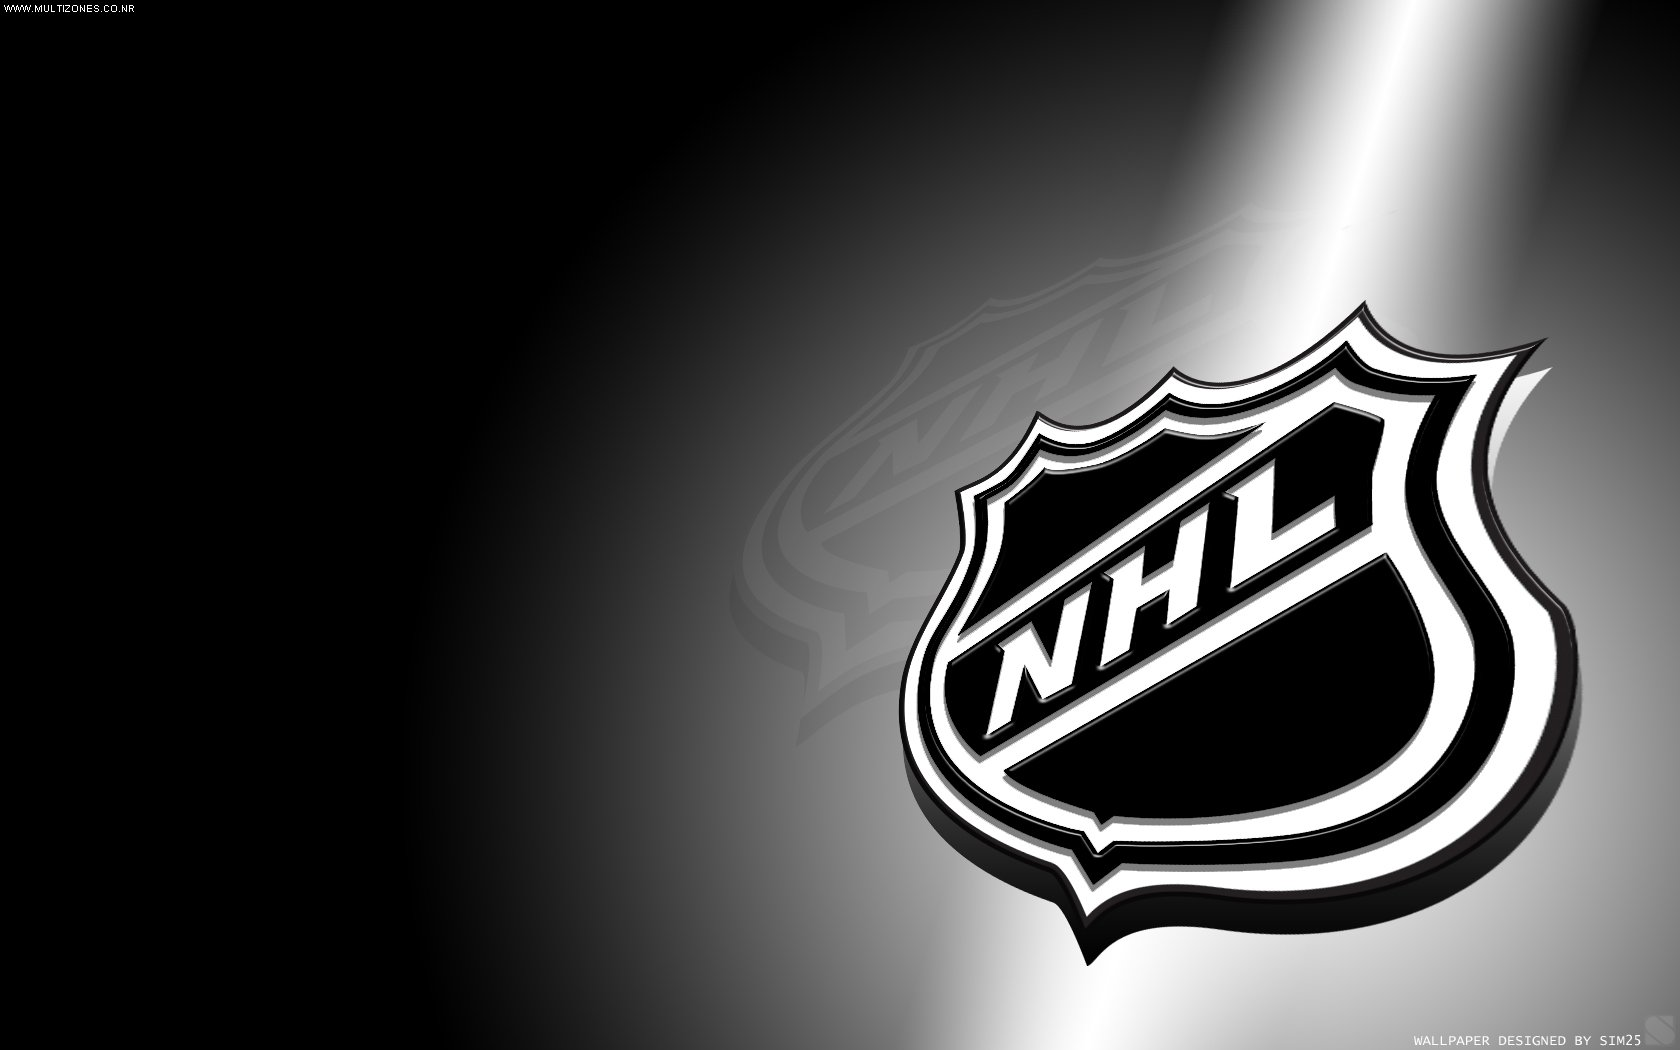 48 nhl wallpapers and backgrounds on wallpapersafari - Nhl hockey wallpapers ...